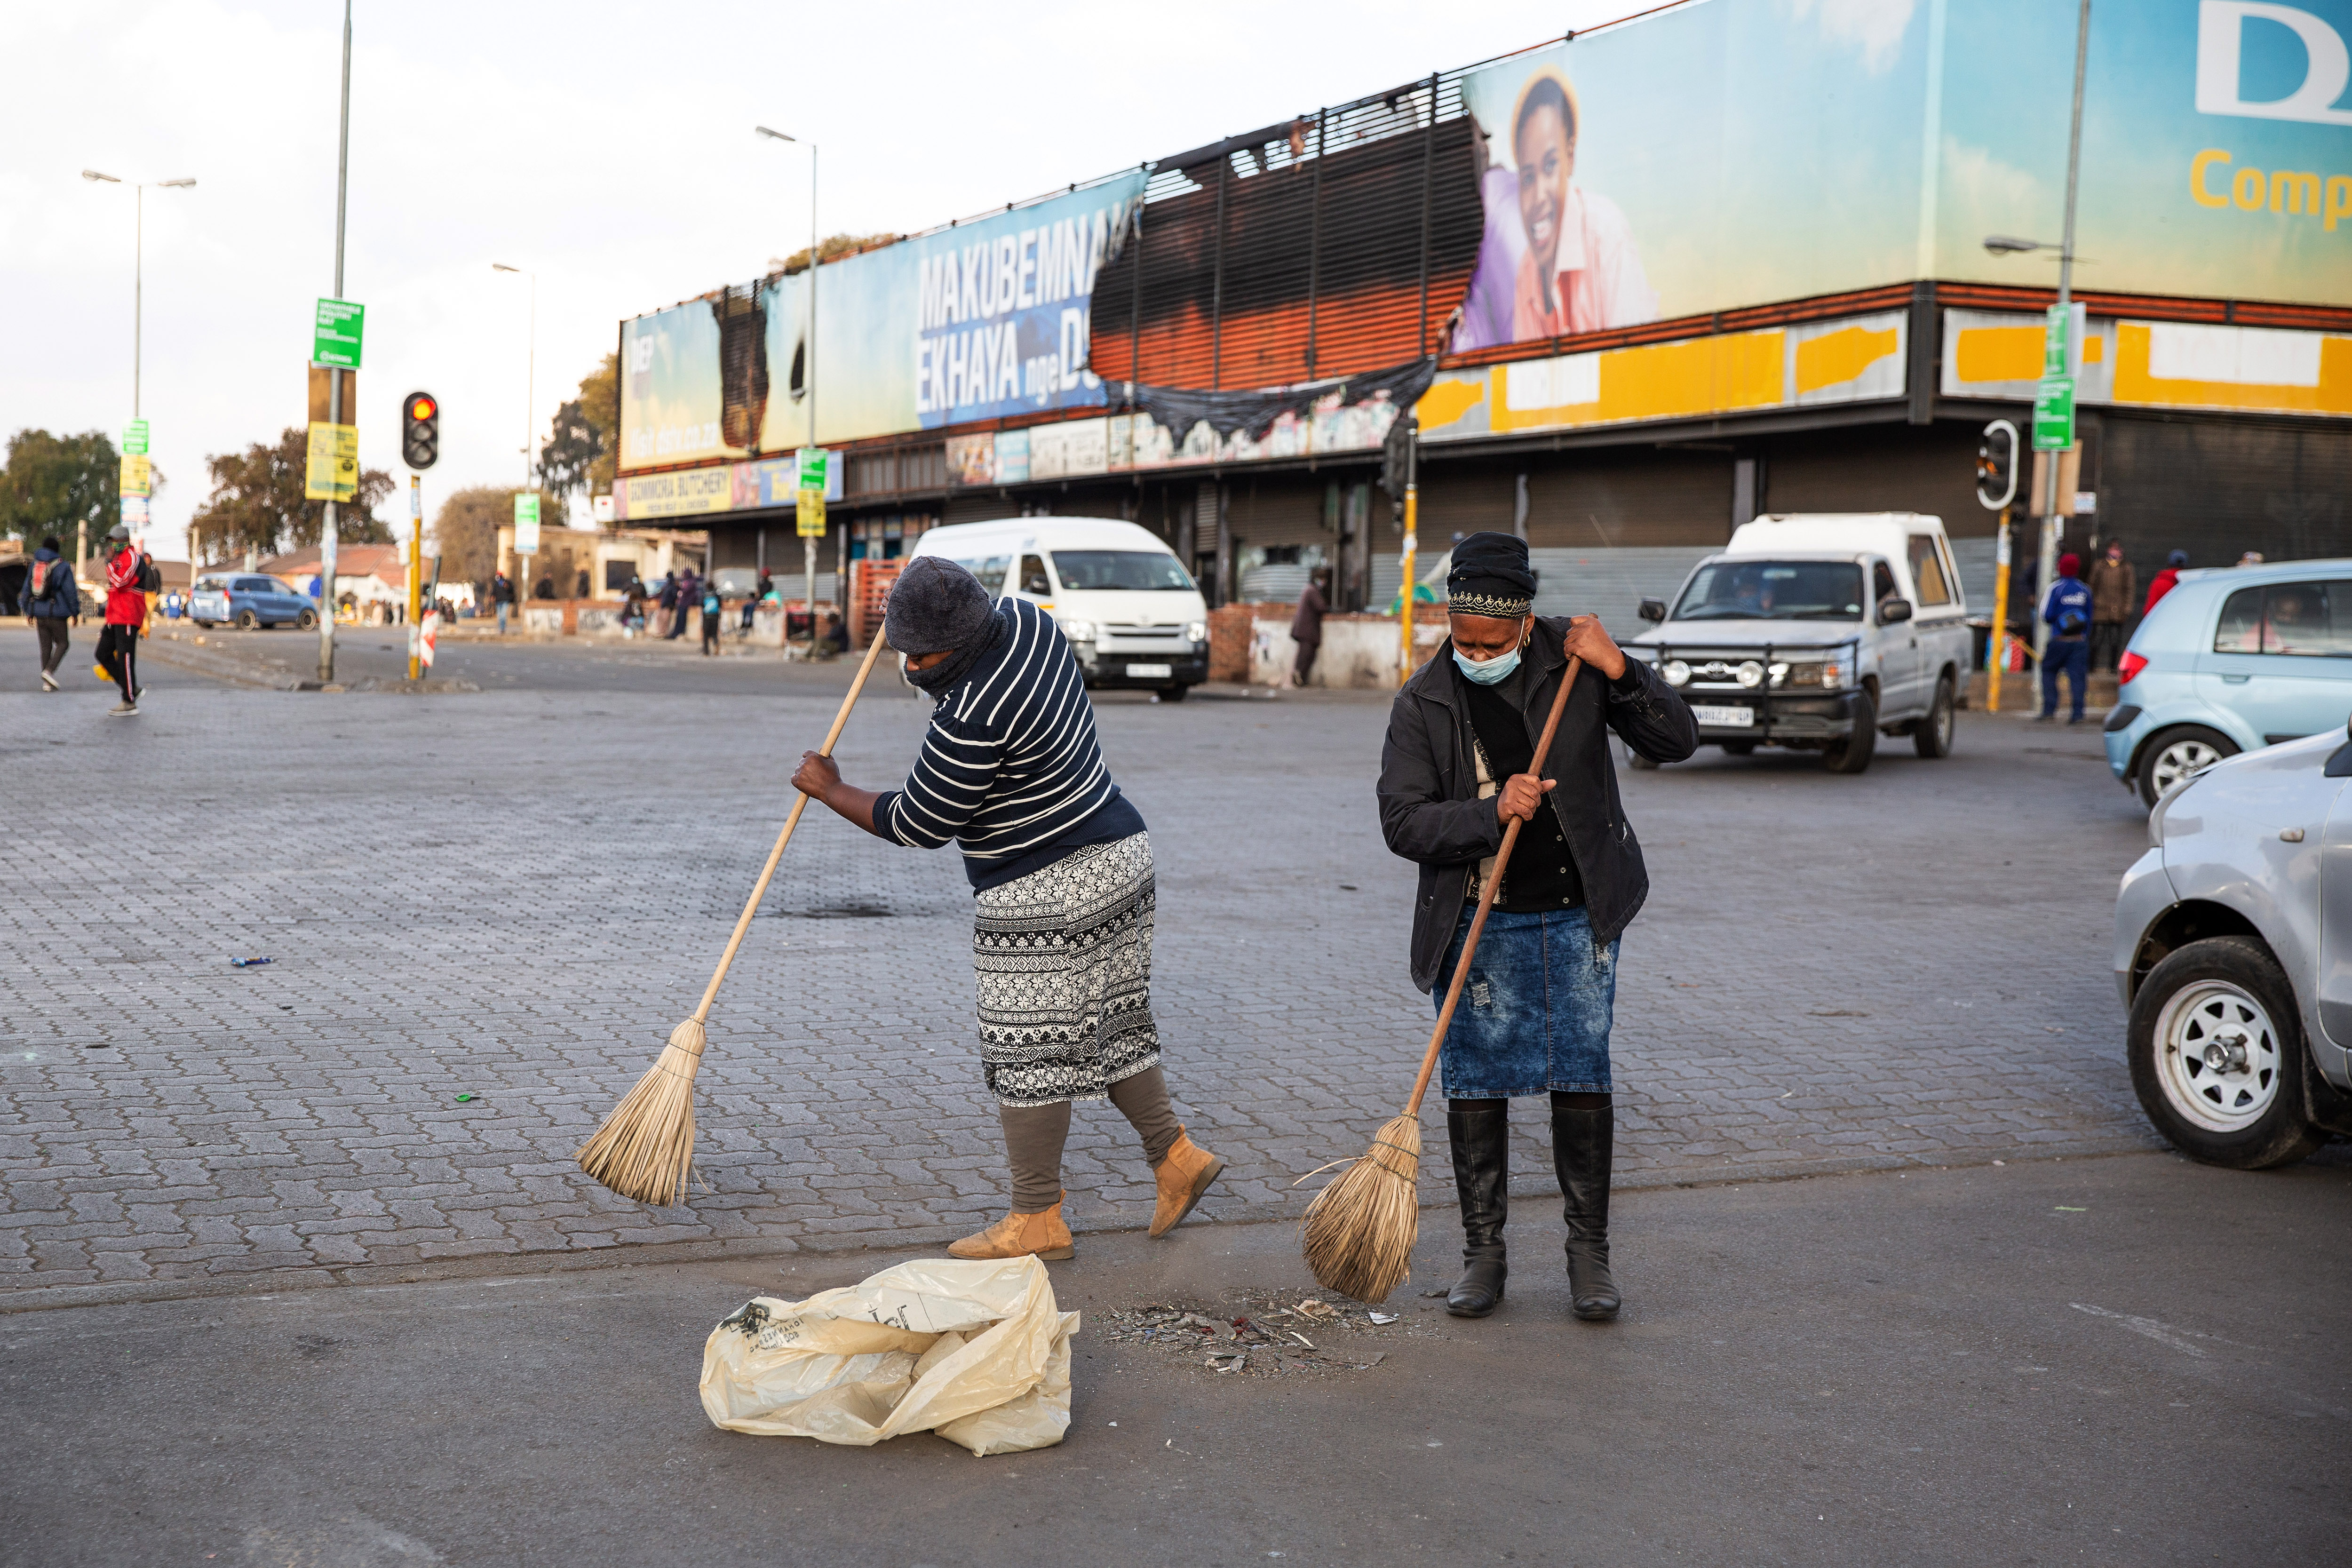 Residents of Alexandra Township begin cleaning up after several days of looting on July 15, 2021 in Johannesburg, South Africa. (Photo by James Oatway/Getty Images)